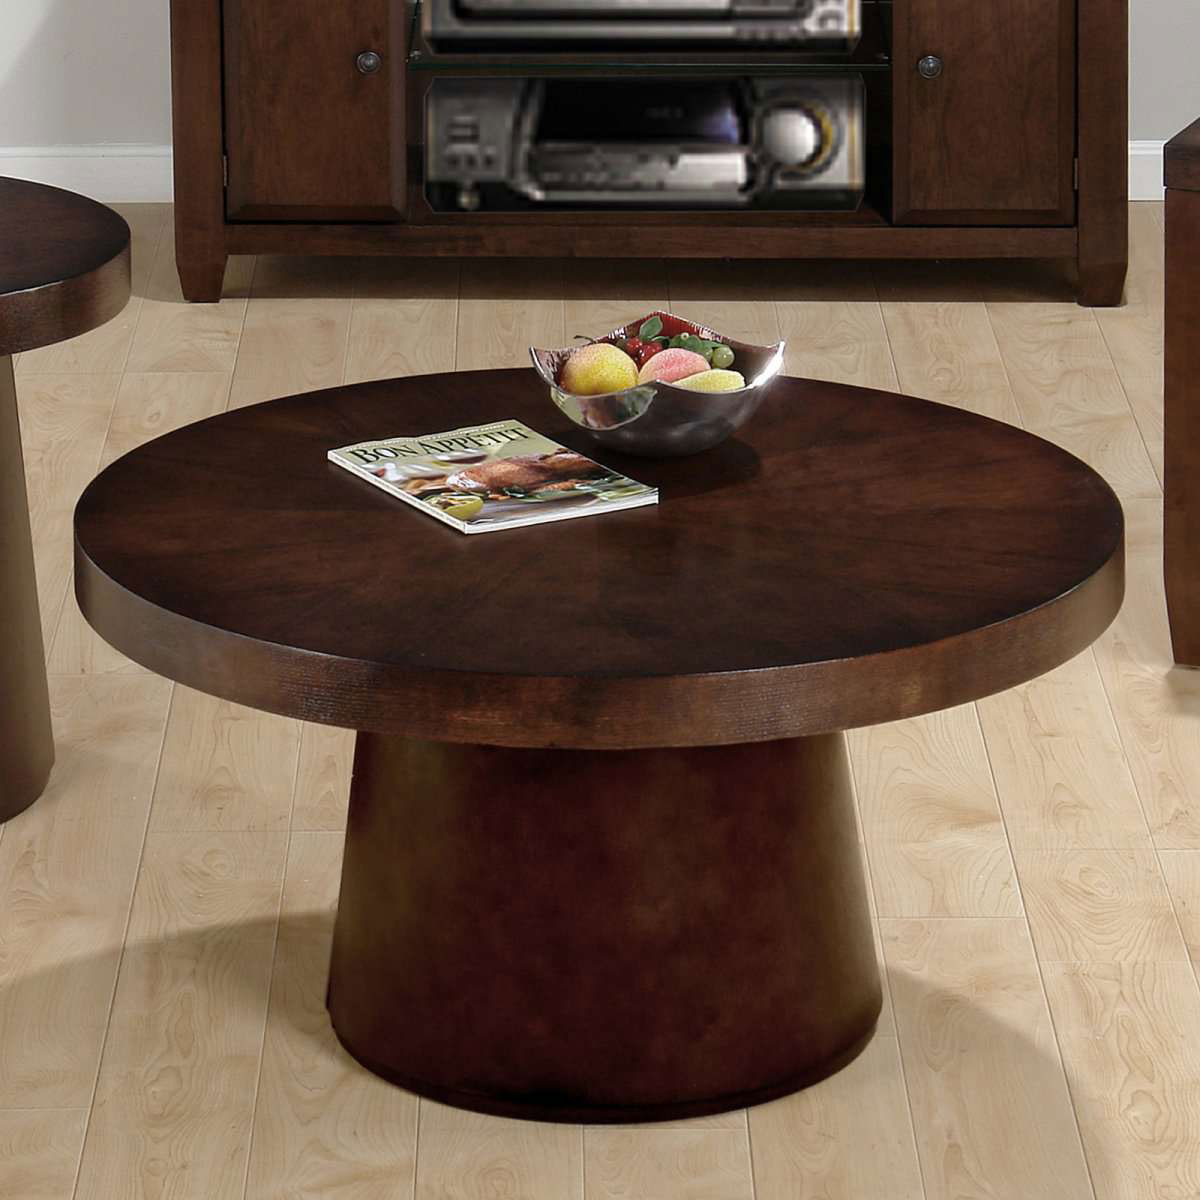 9 Inspirations of Round Small Coffee Tables